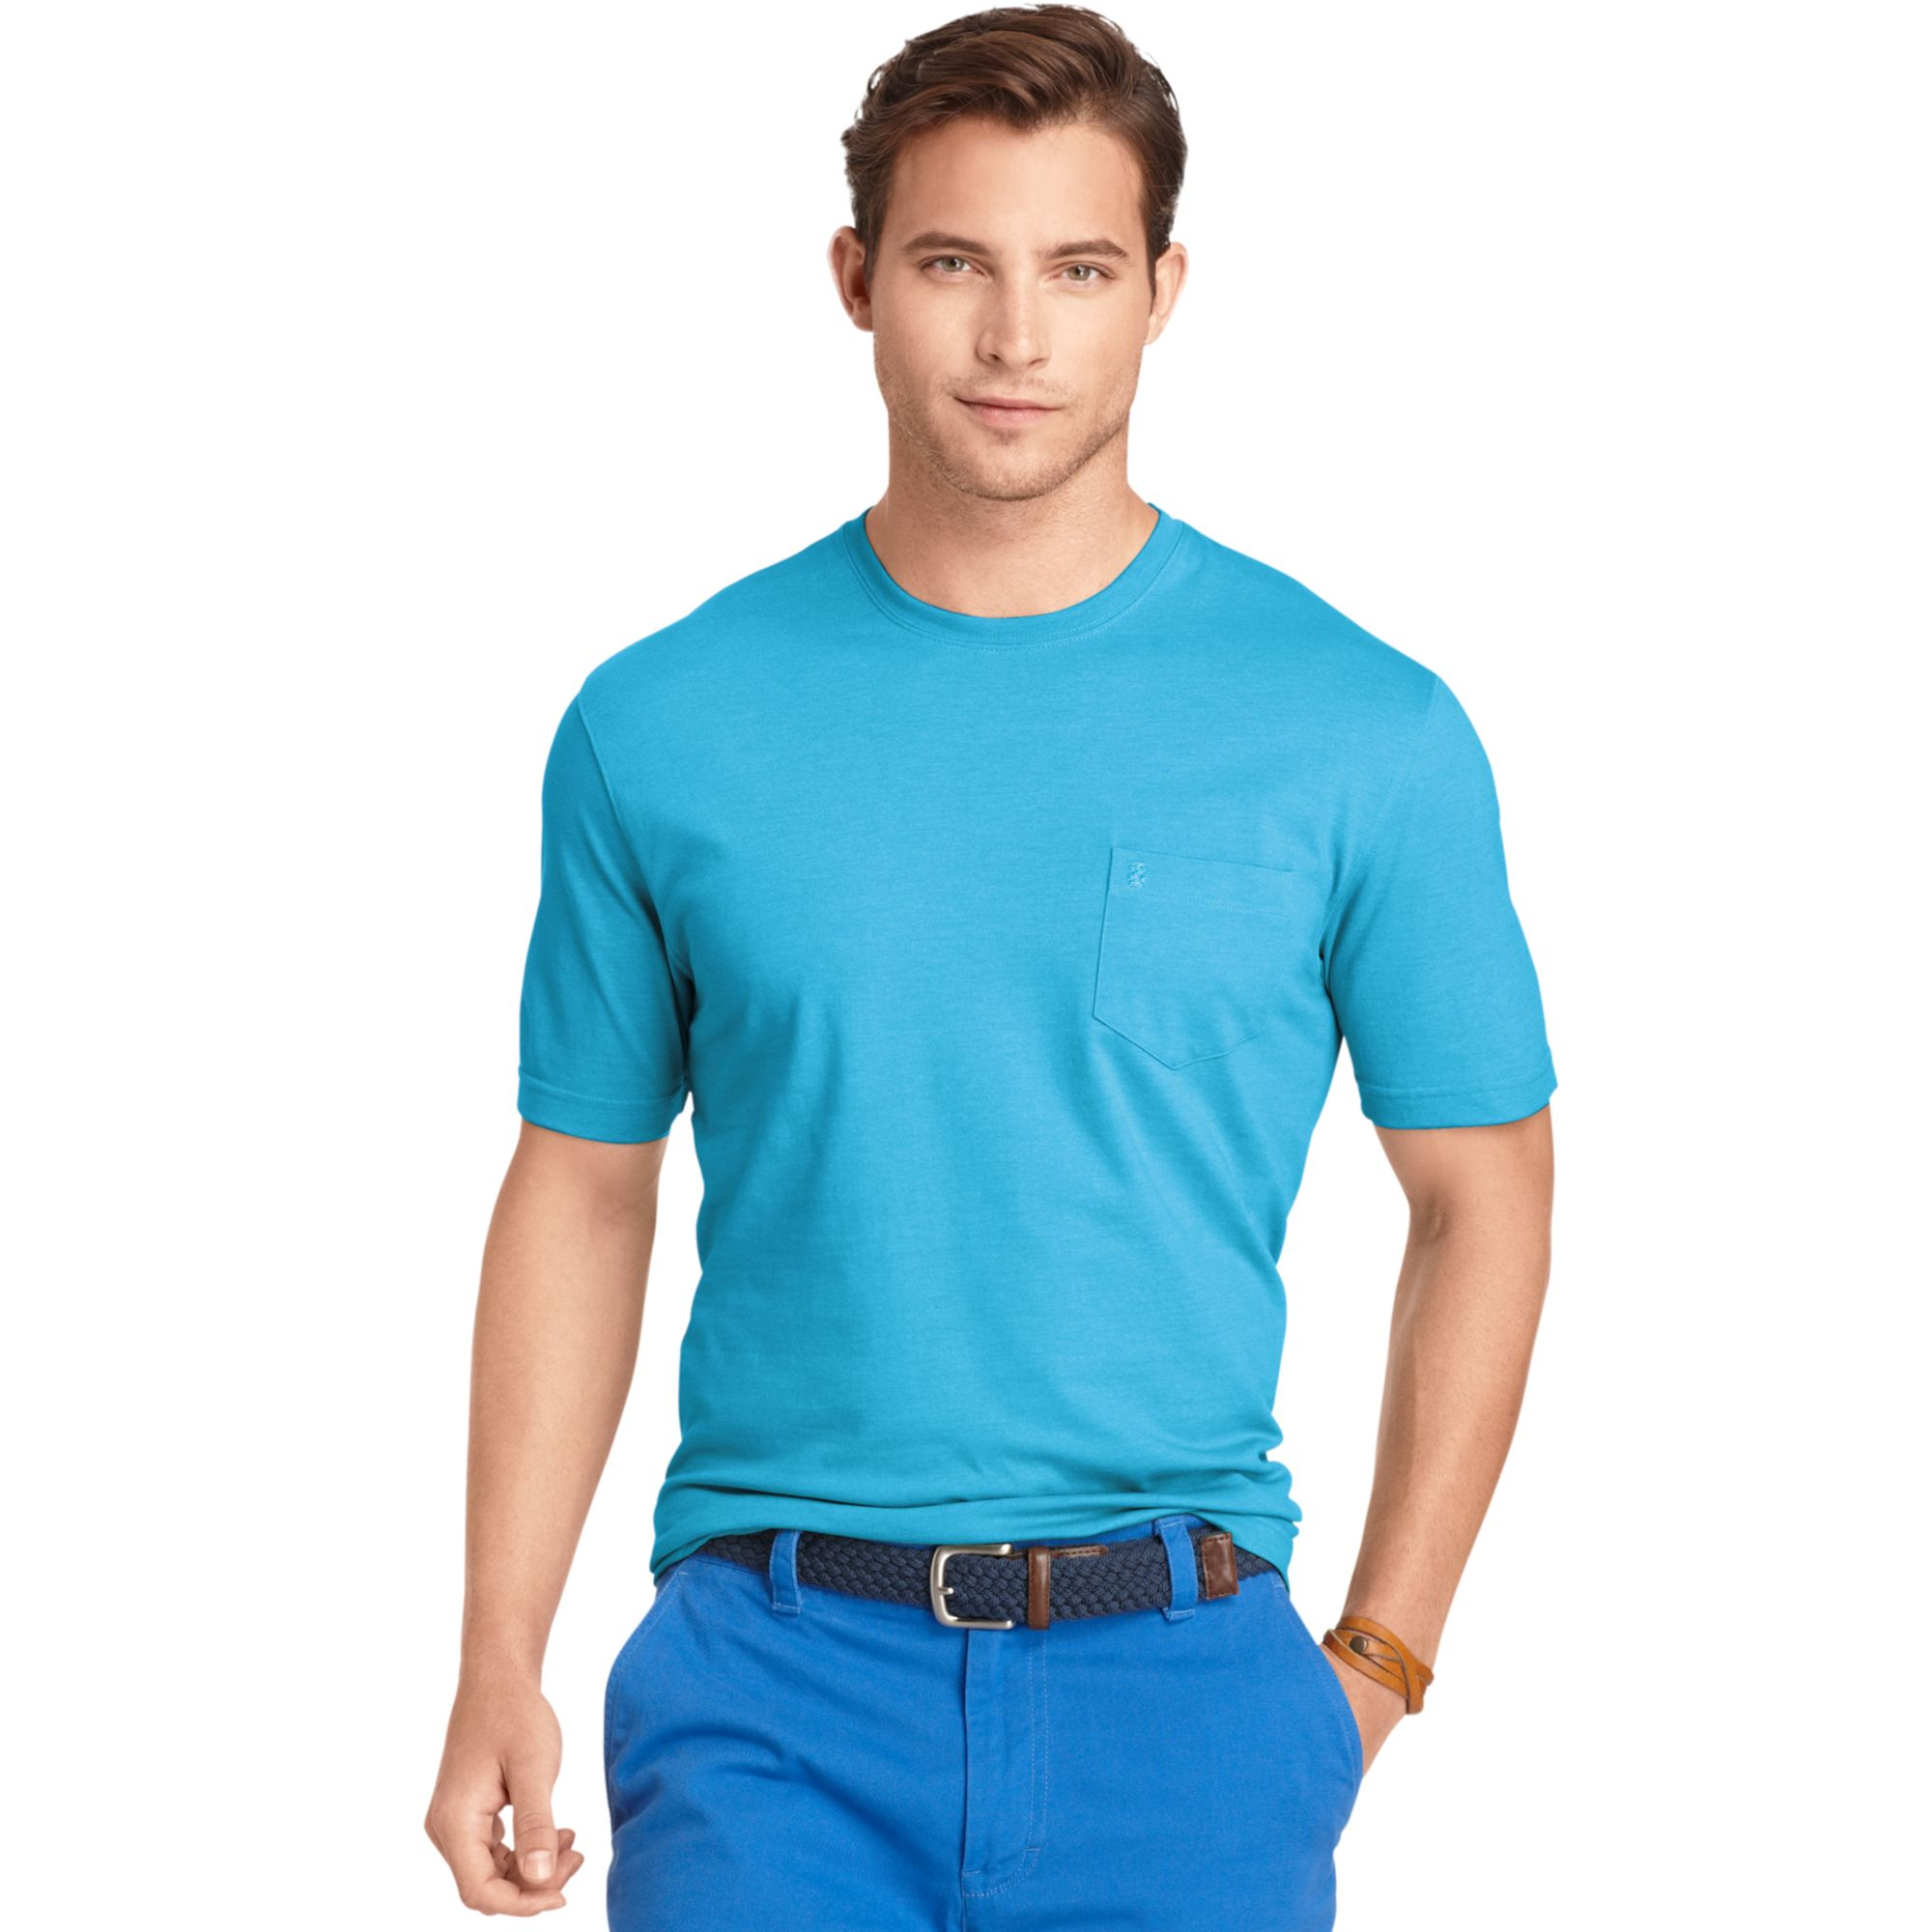 Izod big and tall solid tshirt in blue for men blue for Izod big and tall shirts